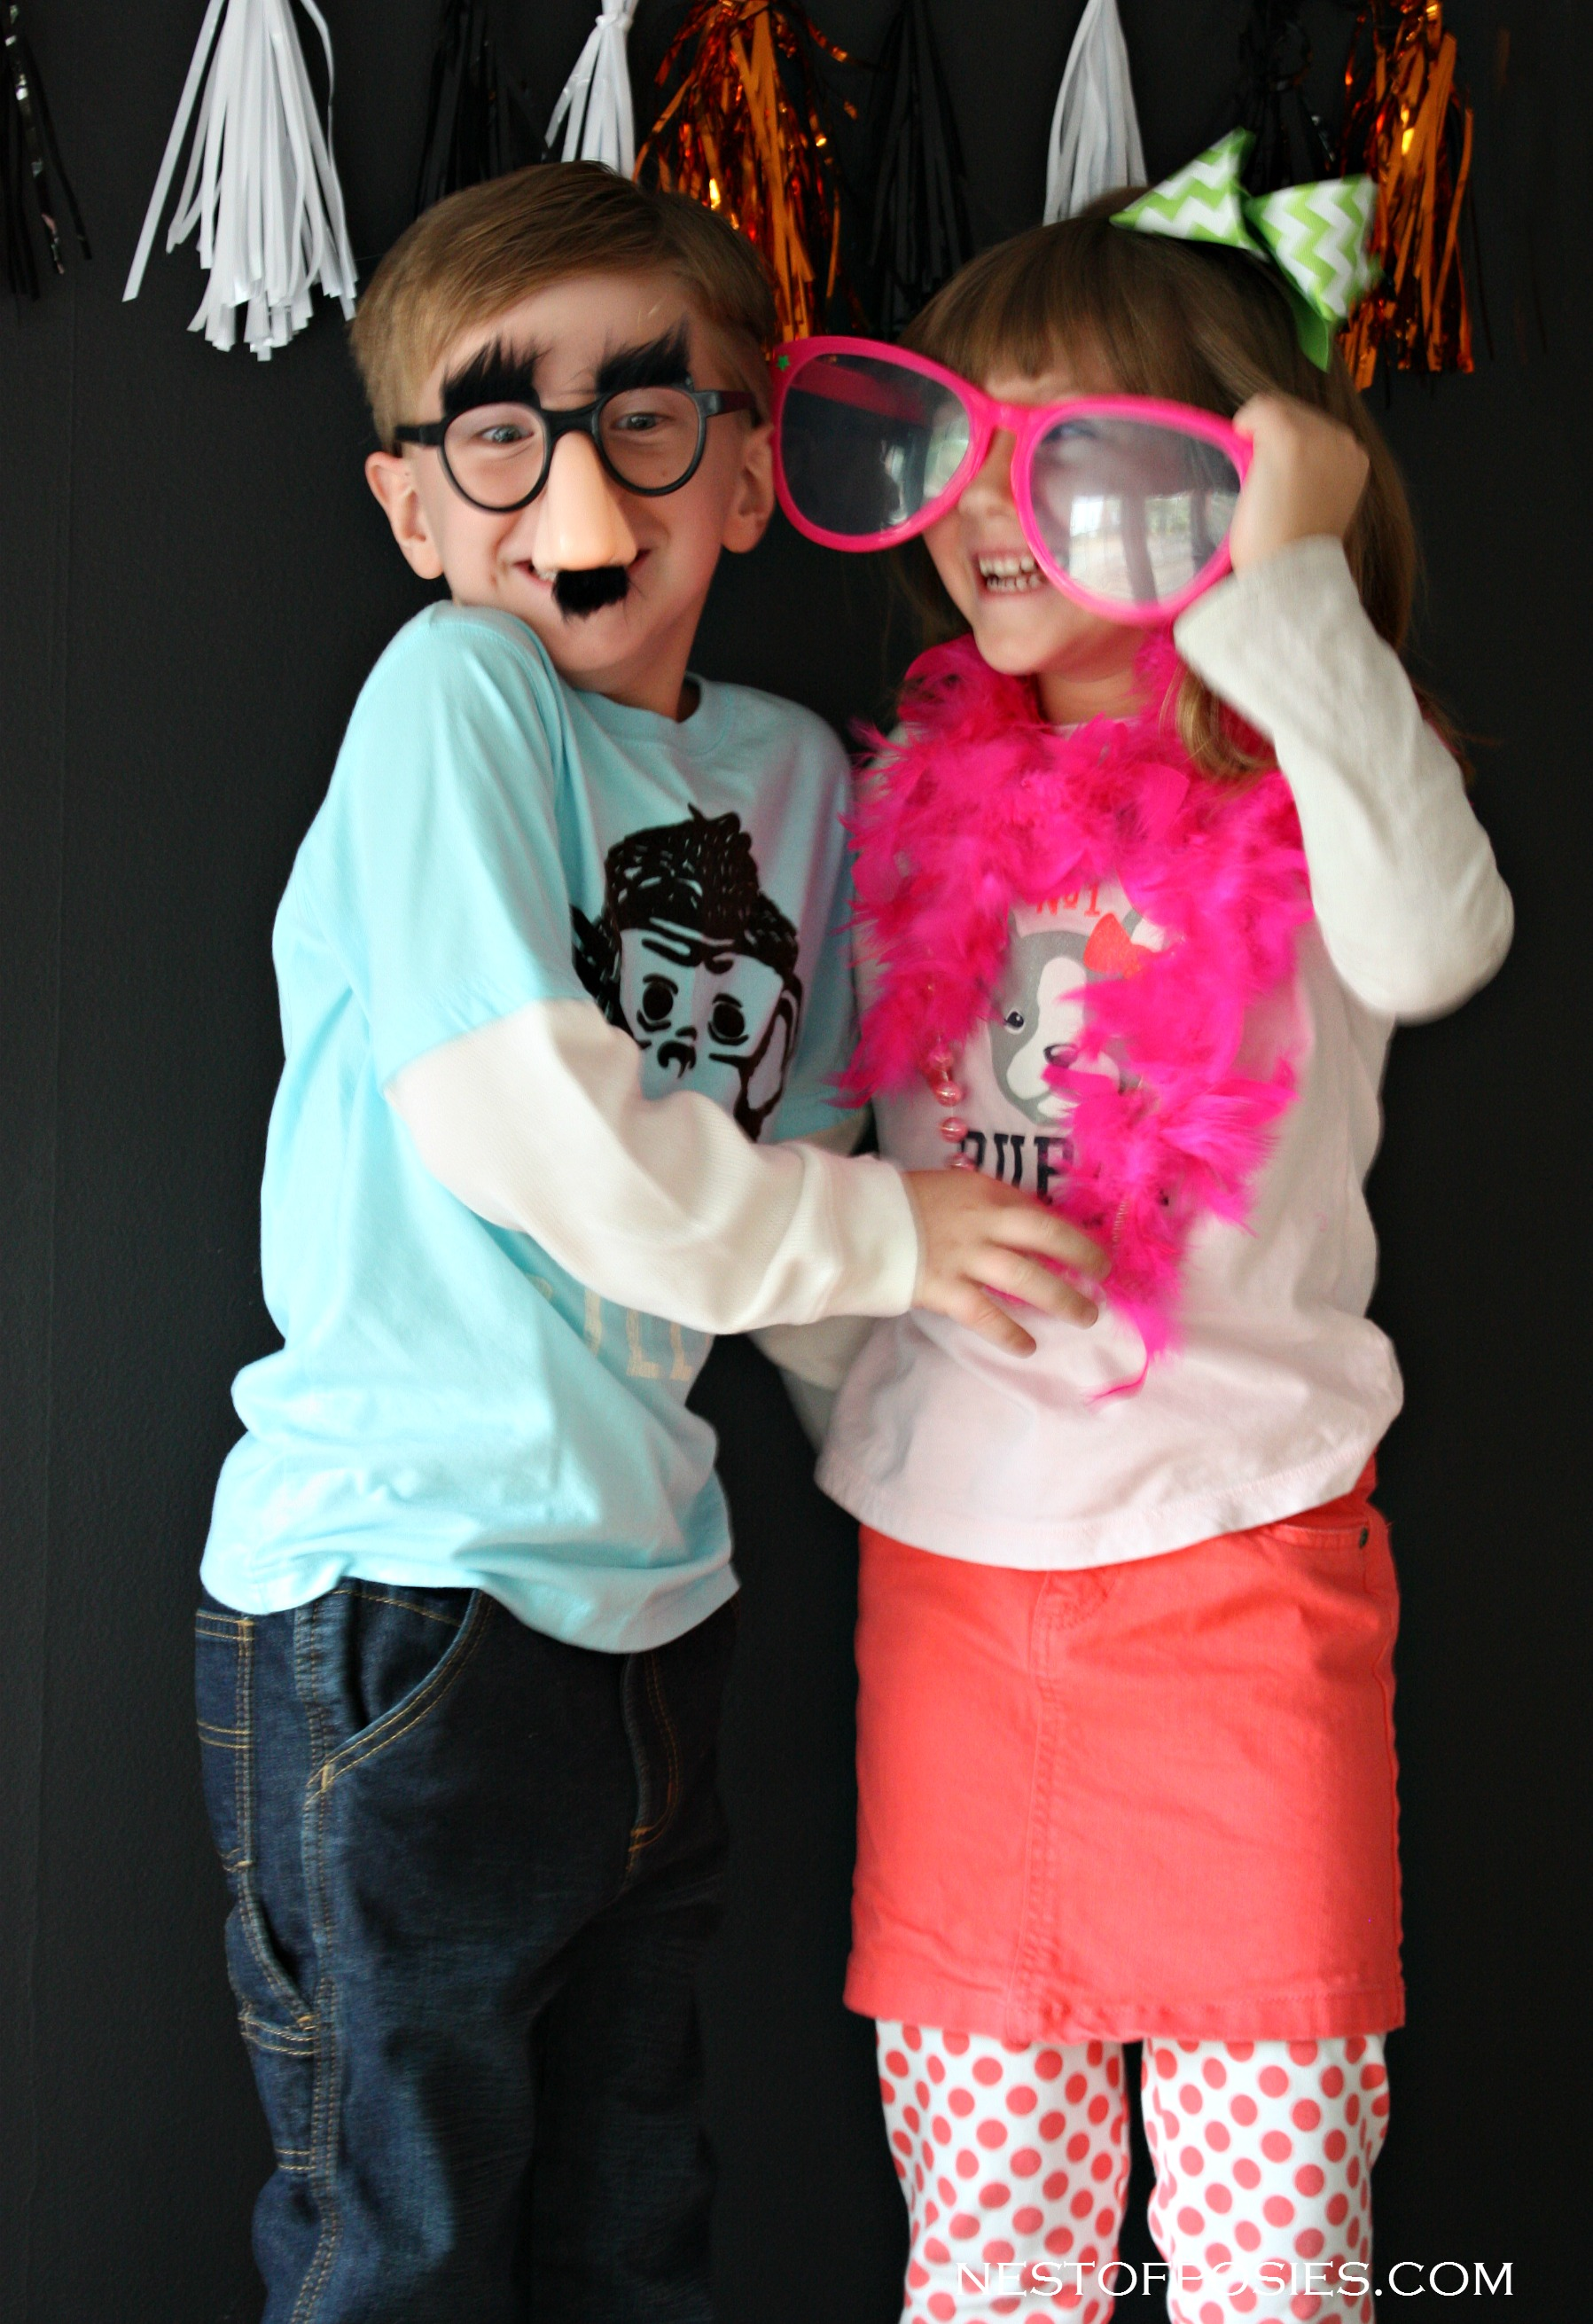 Fun Photo Booth Ideas with kids in mind